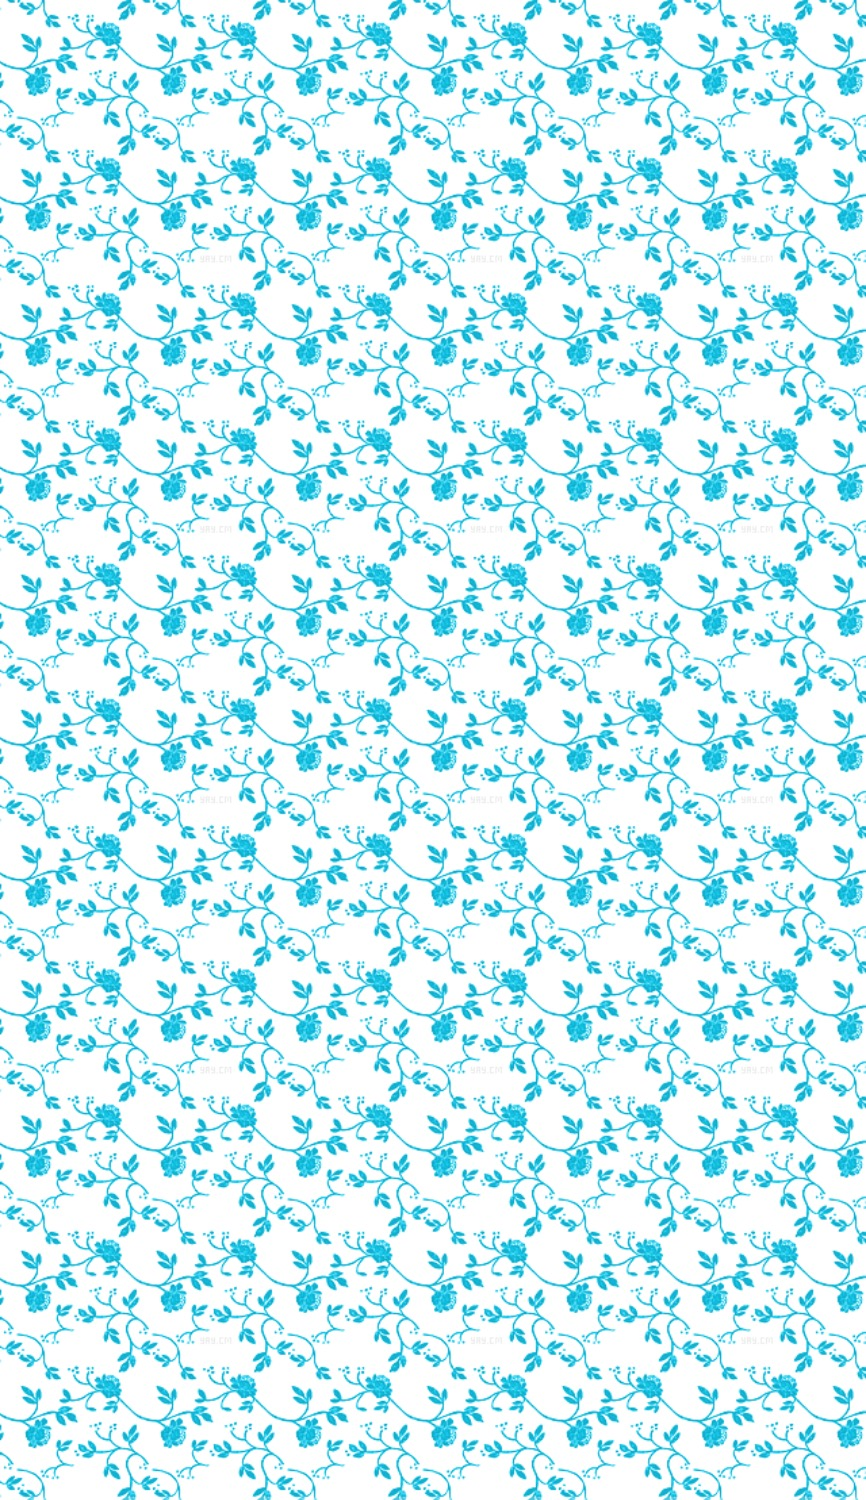 Patterns Backgrounds Wallpaper Images Blue And White Floral HD Background Photos